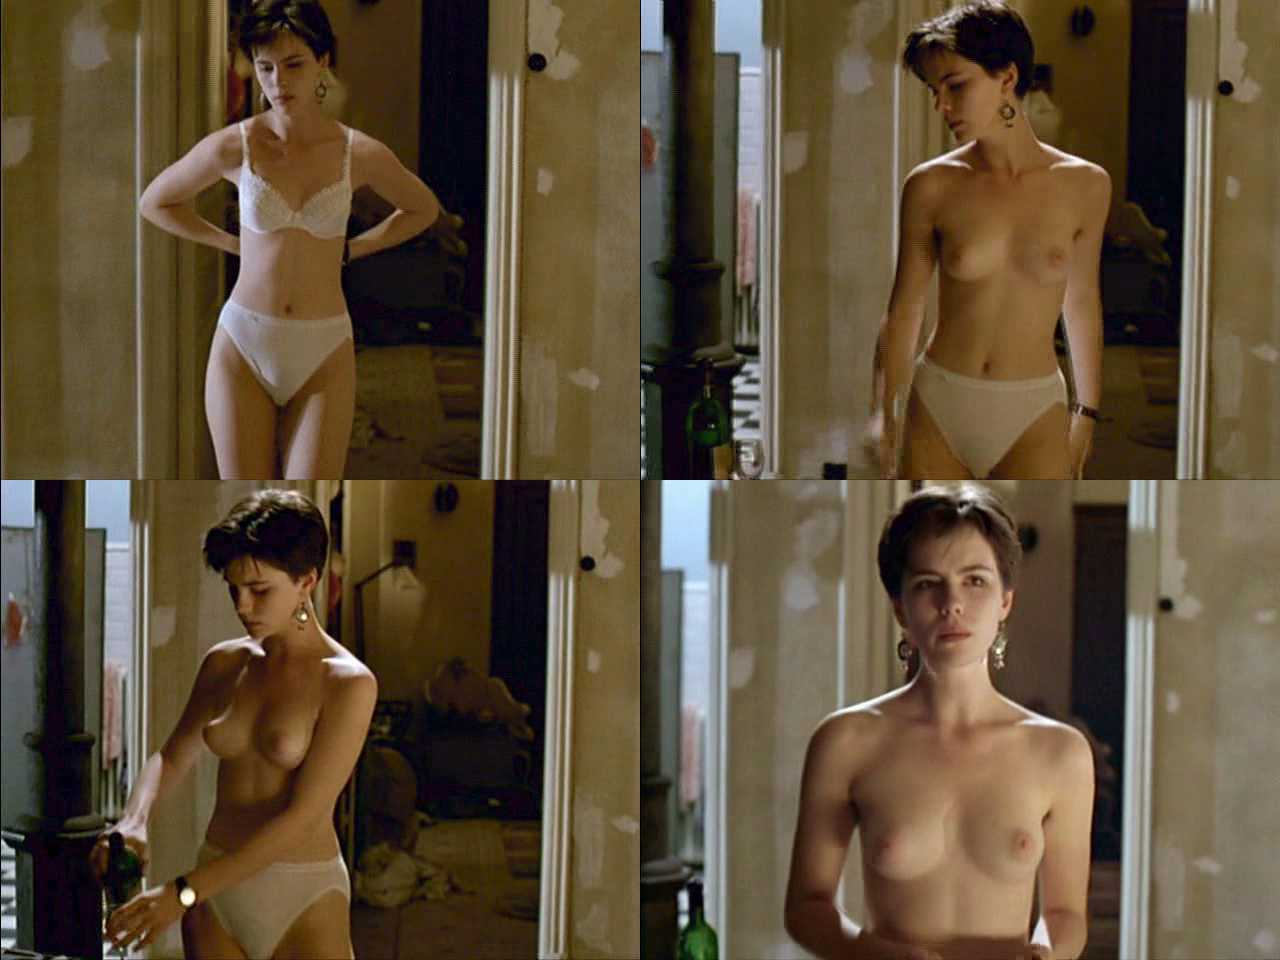 Kate beckinsale pictures haunted naked, free naked tits ass pics